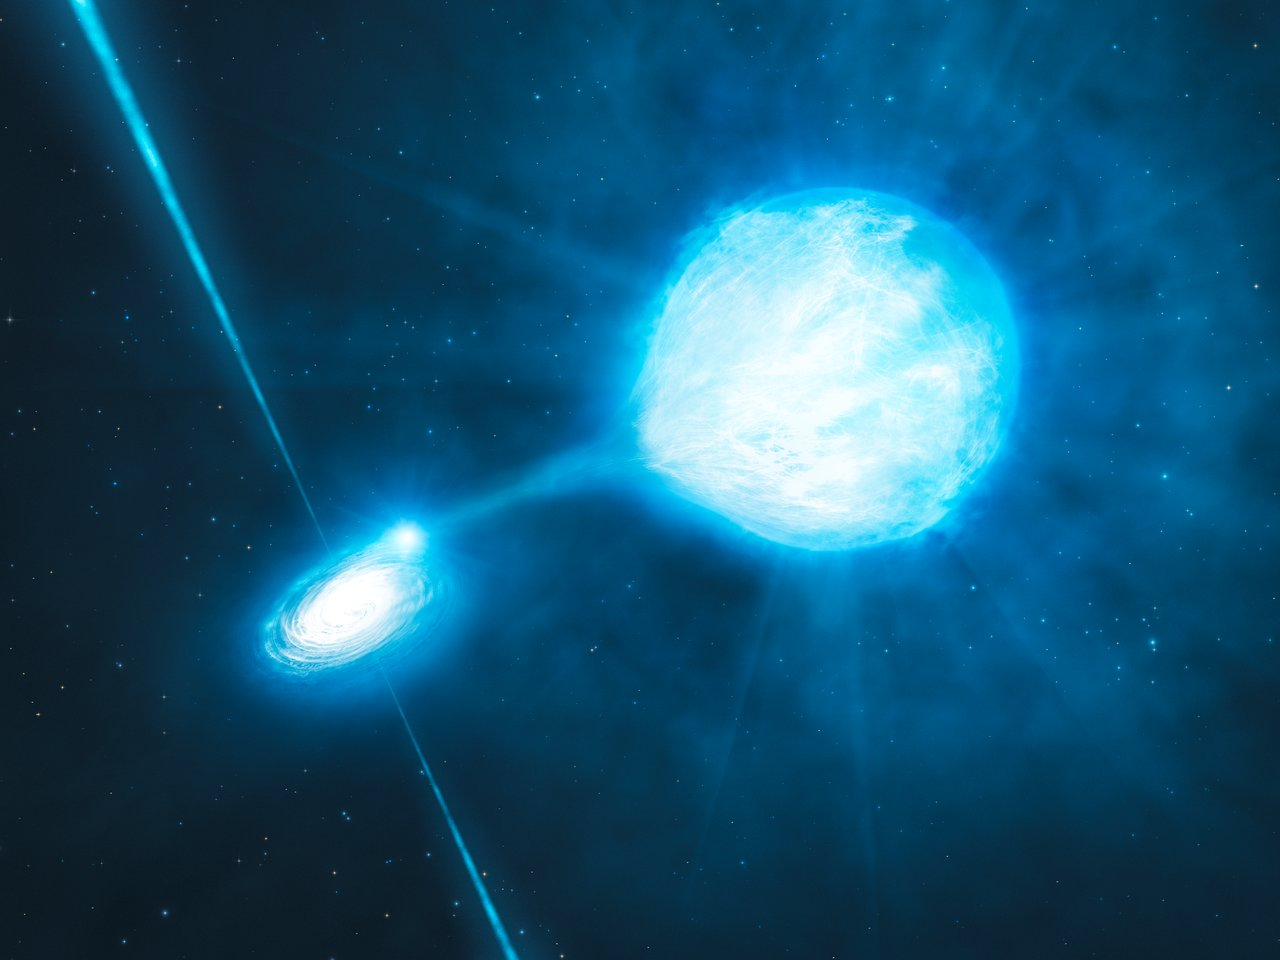 Binary system with an accretion disk around a stellar-mass black hole being fed by material from the companion star.